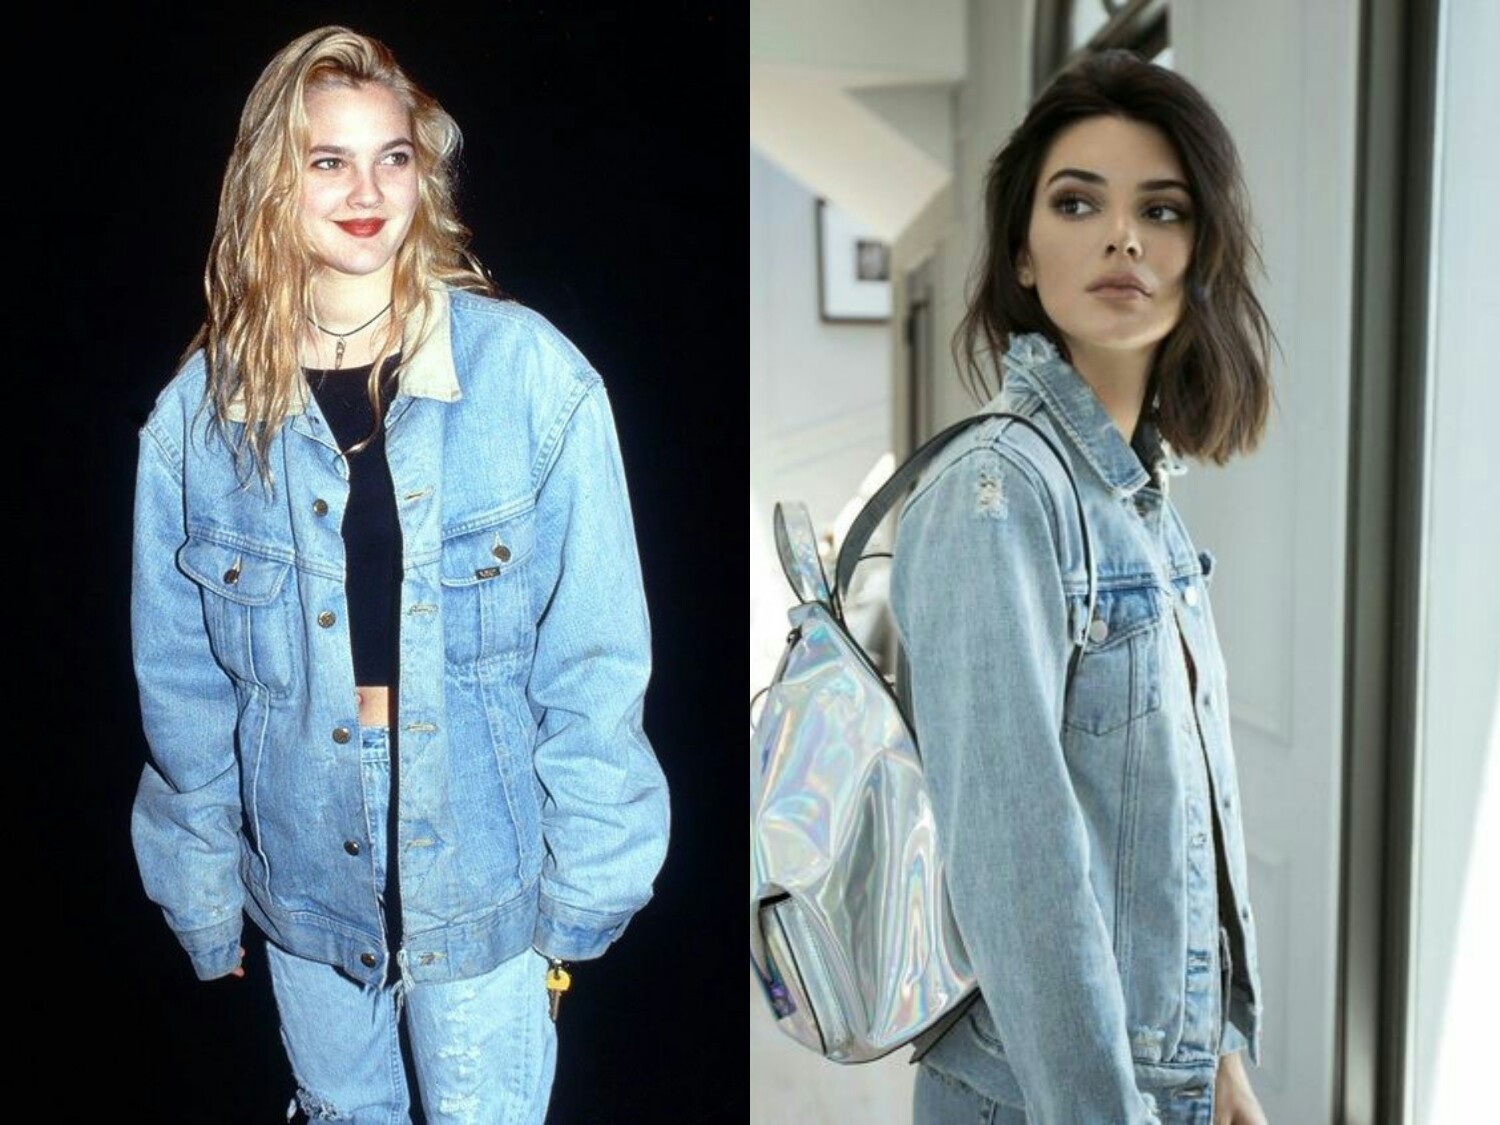 80s fashion women trends images galleries with a bite Fashion style in 80 s